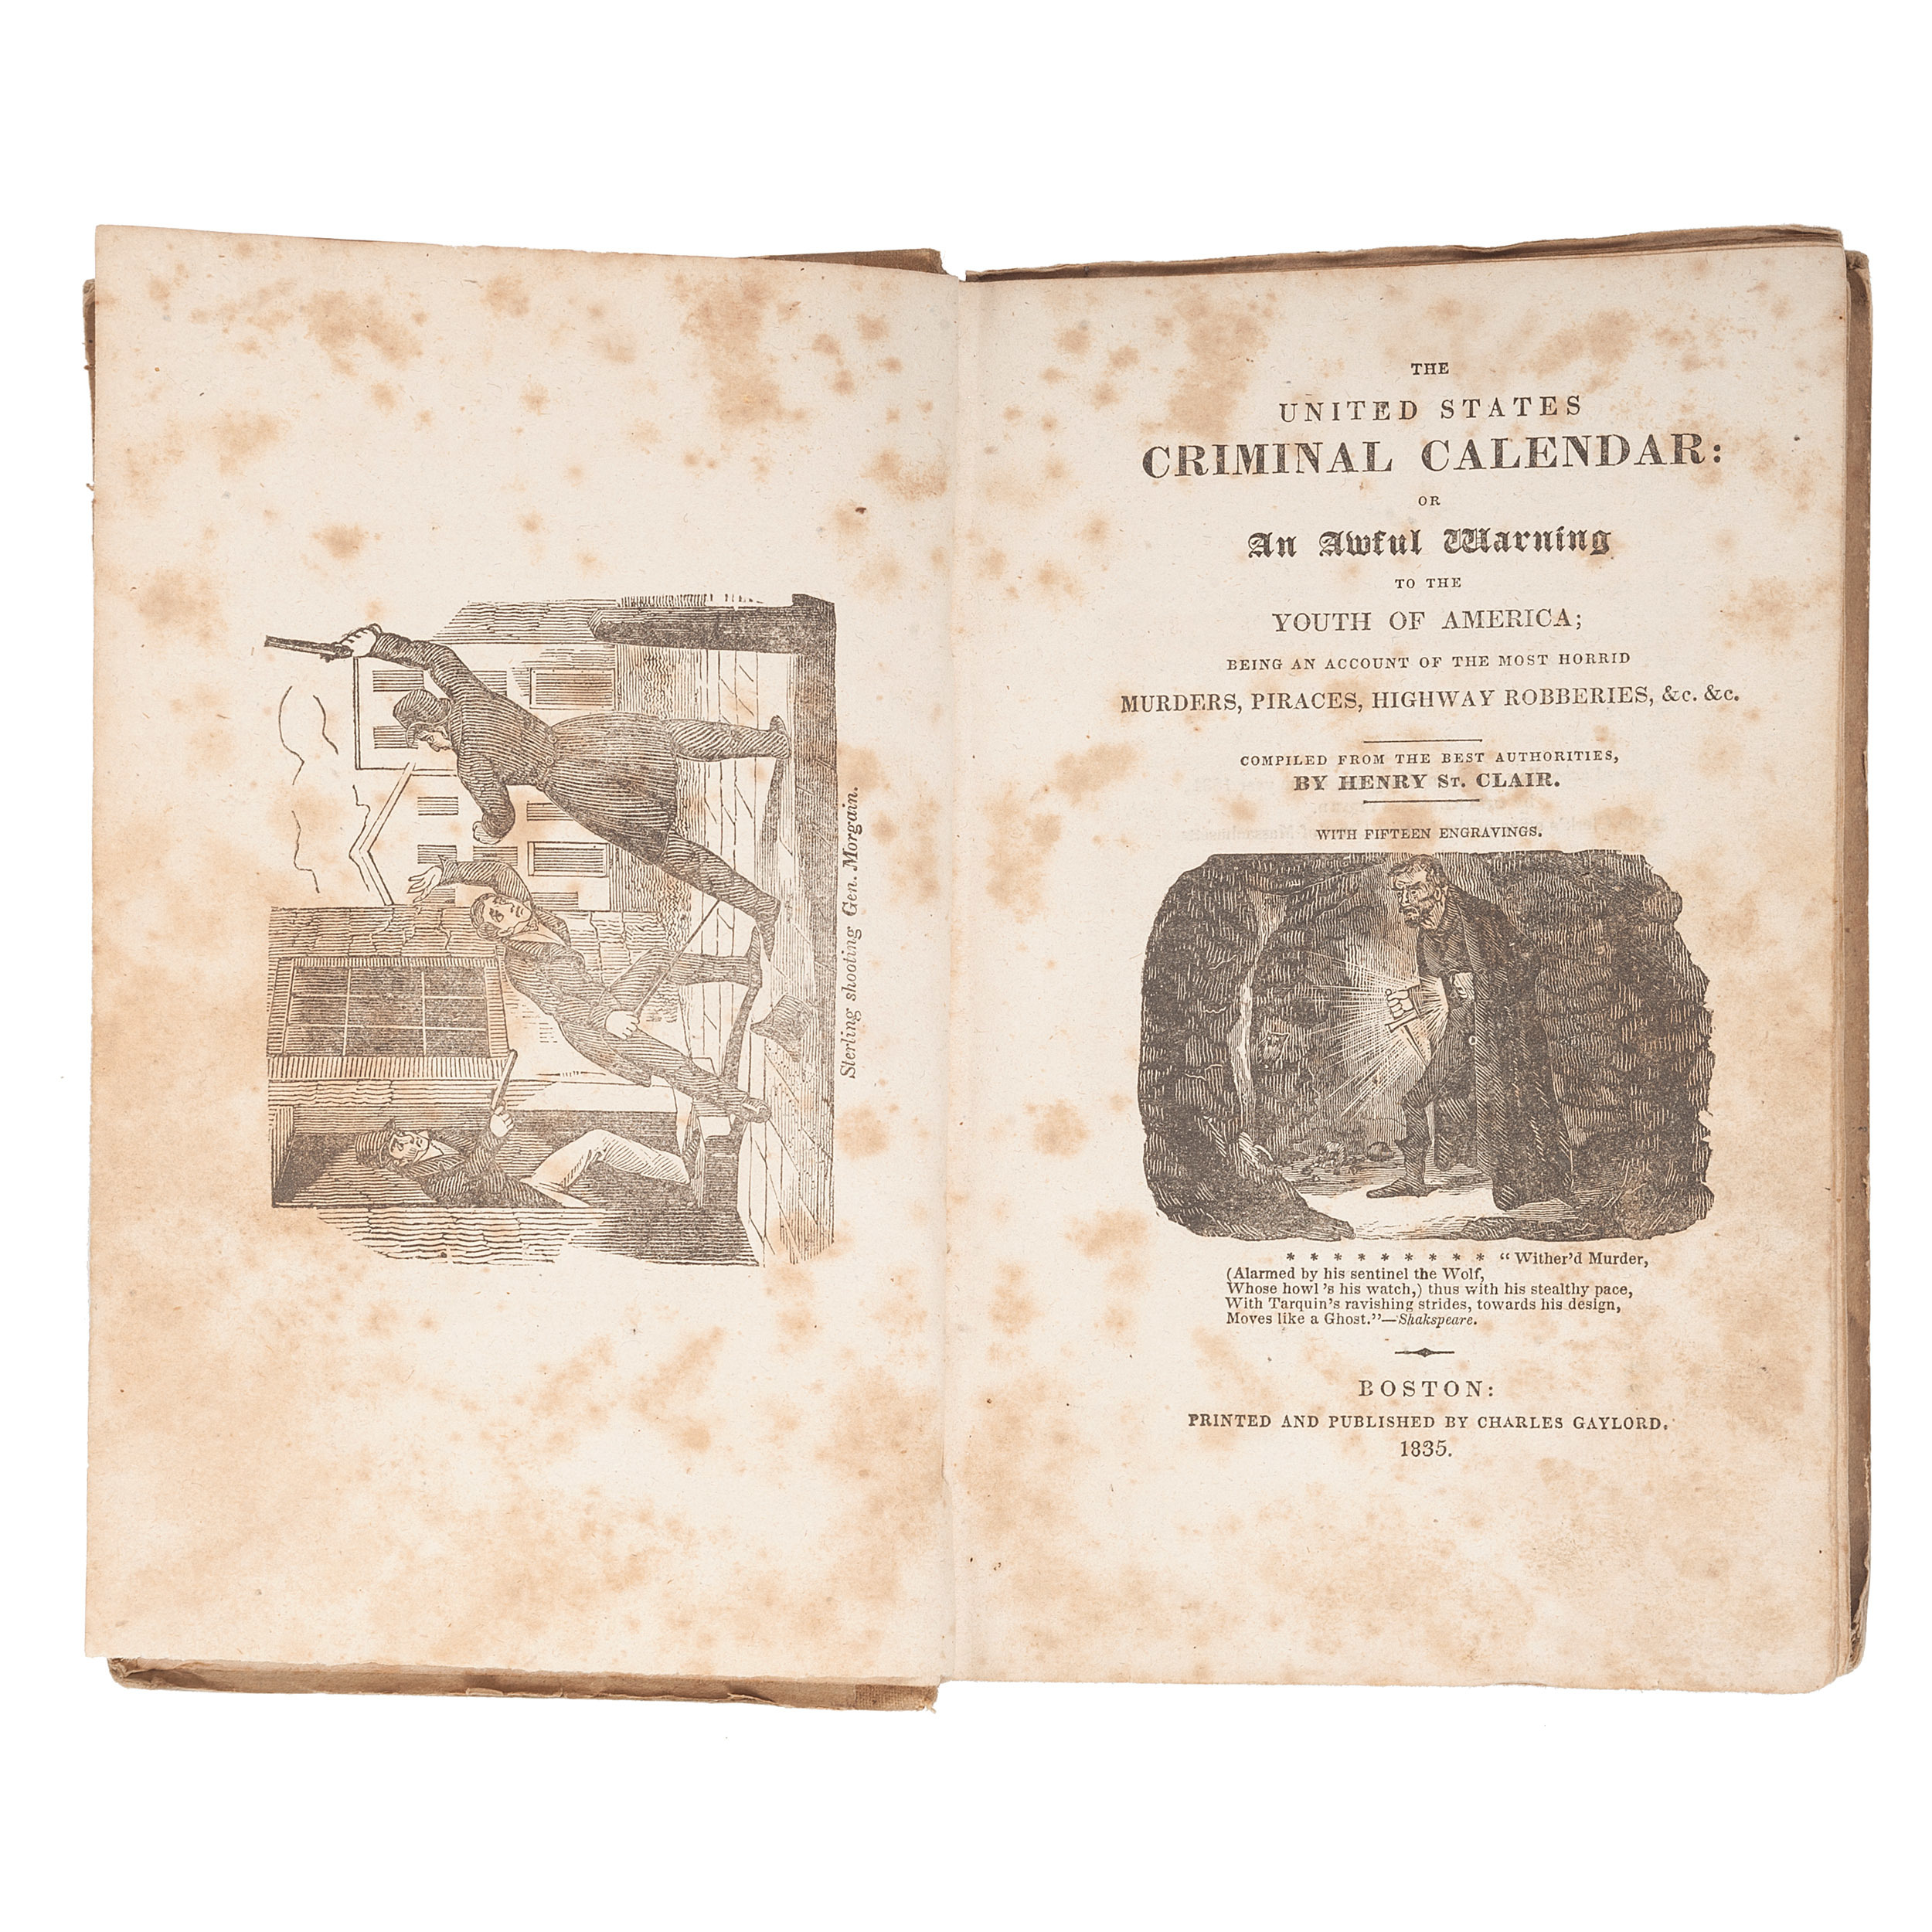 [Crime and Punishment] The United States Criminal Calendar for 1833,  Connecticut Blue Laws